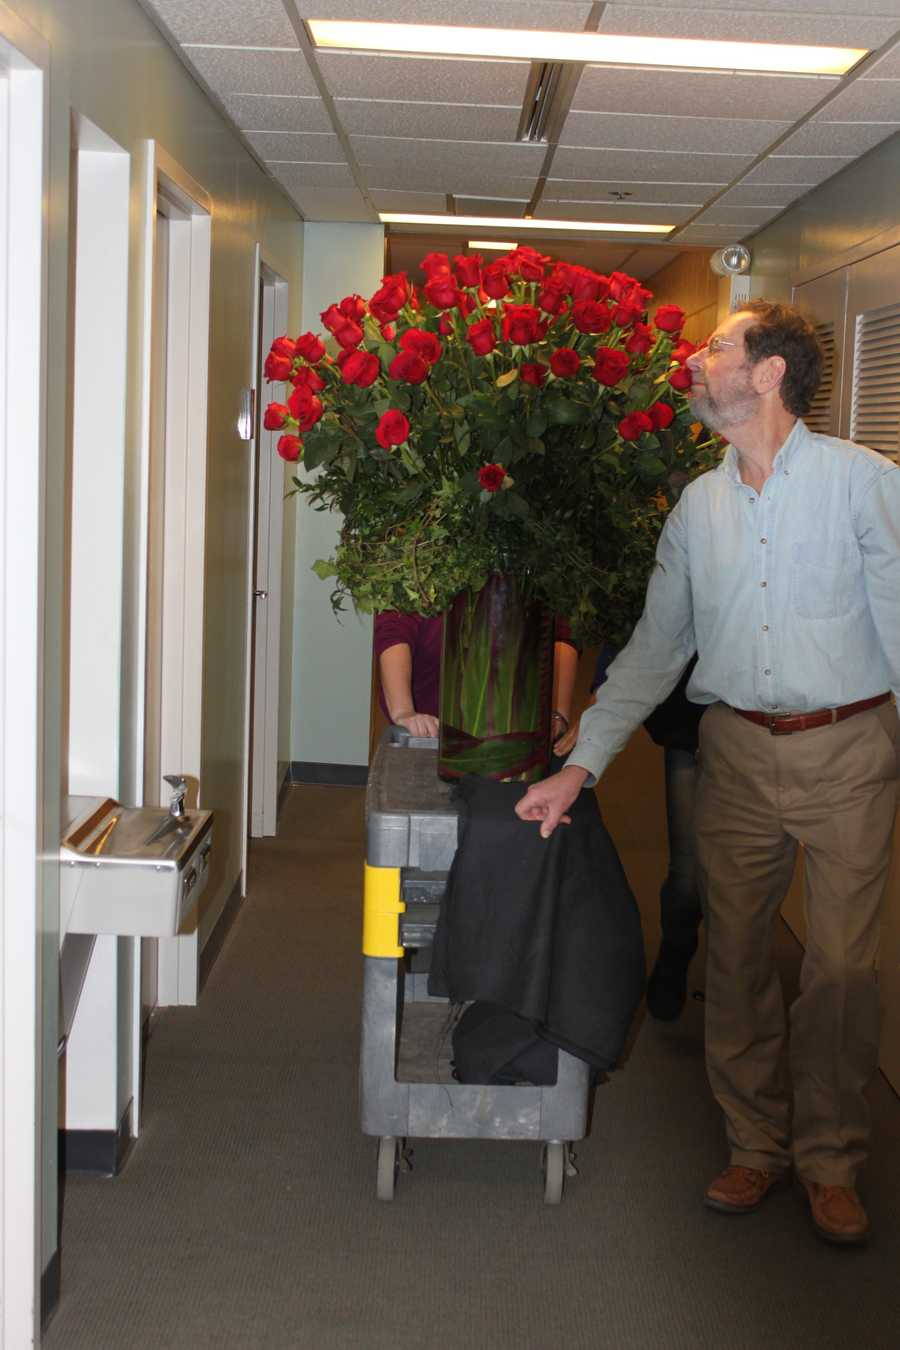 There, of course, was just enough time to smell the roses as it made its way into the studio.